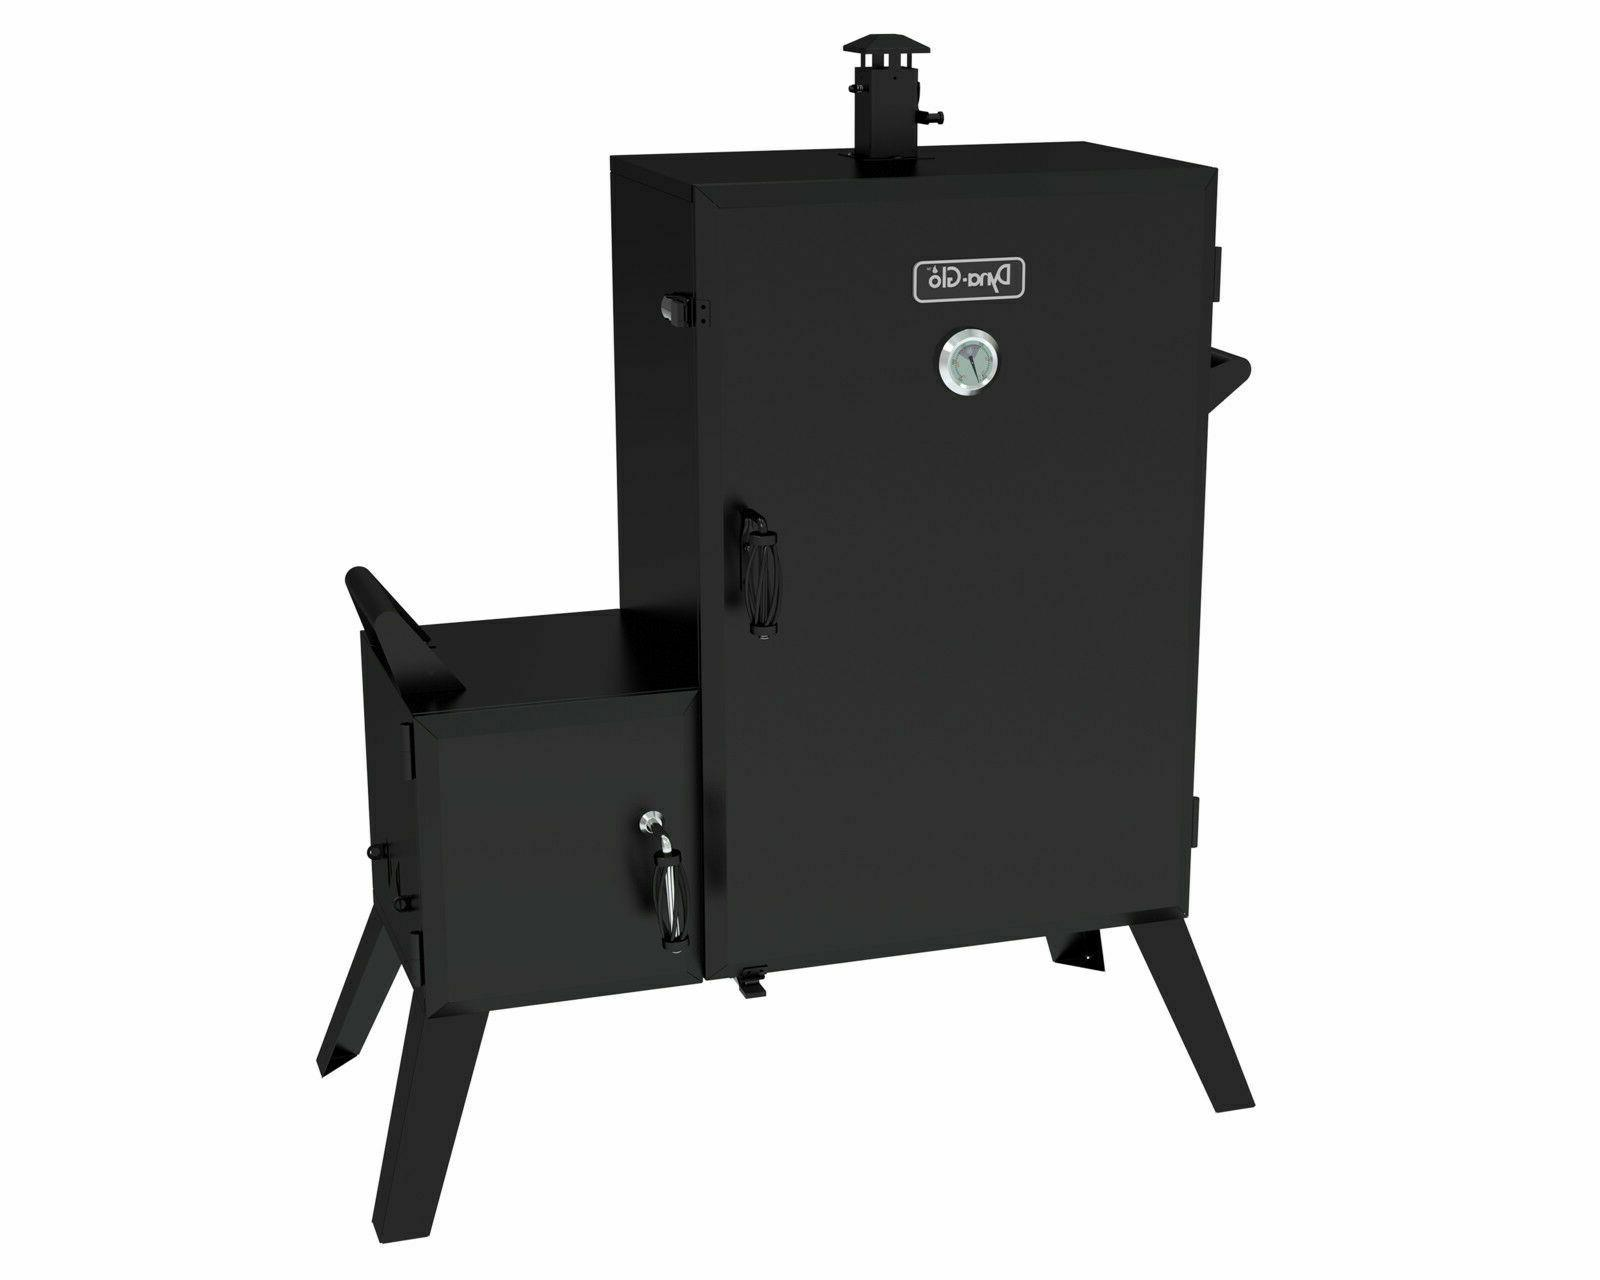 Dyna-Glo 36 in. Vertical Charcoal Smoker Grill Offset Wide B